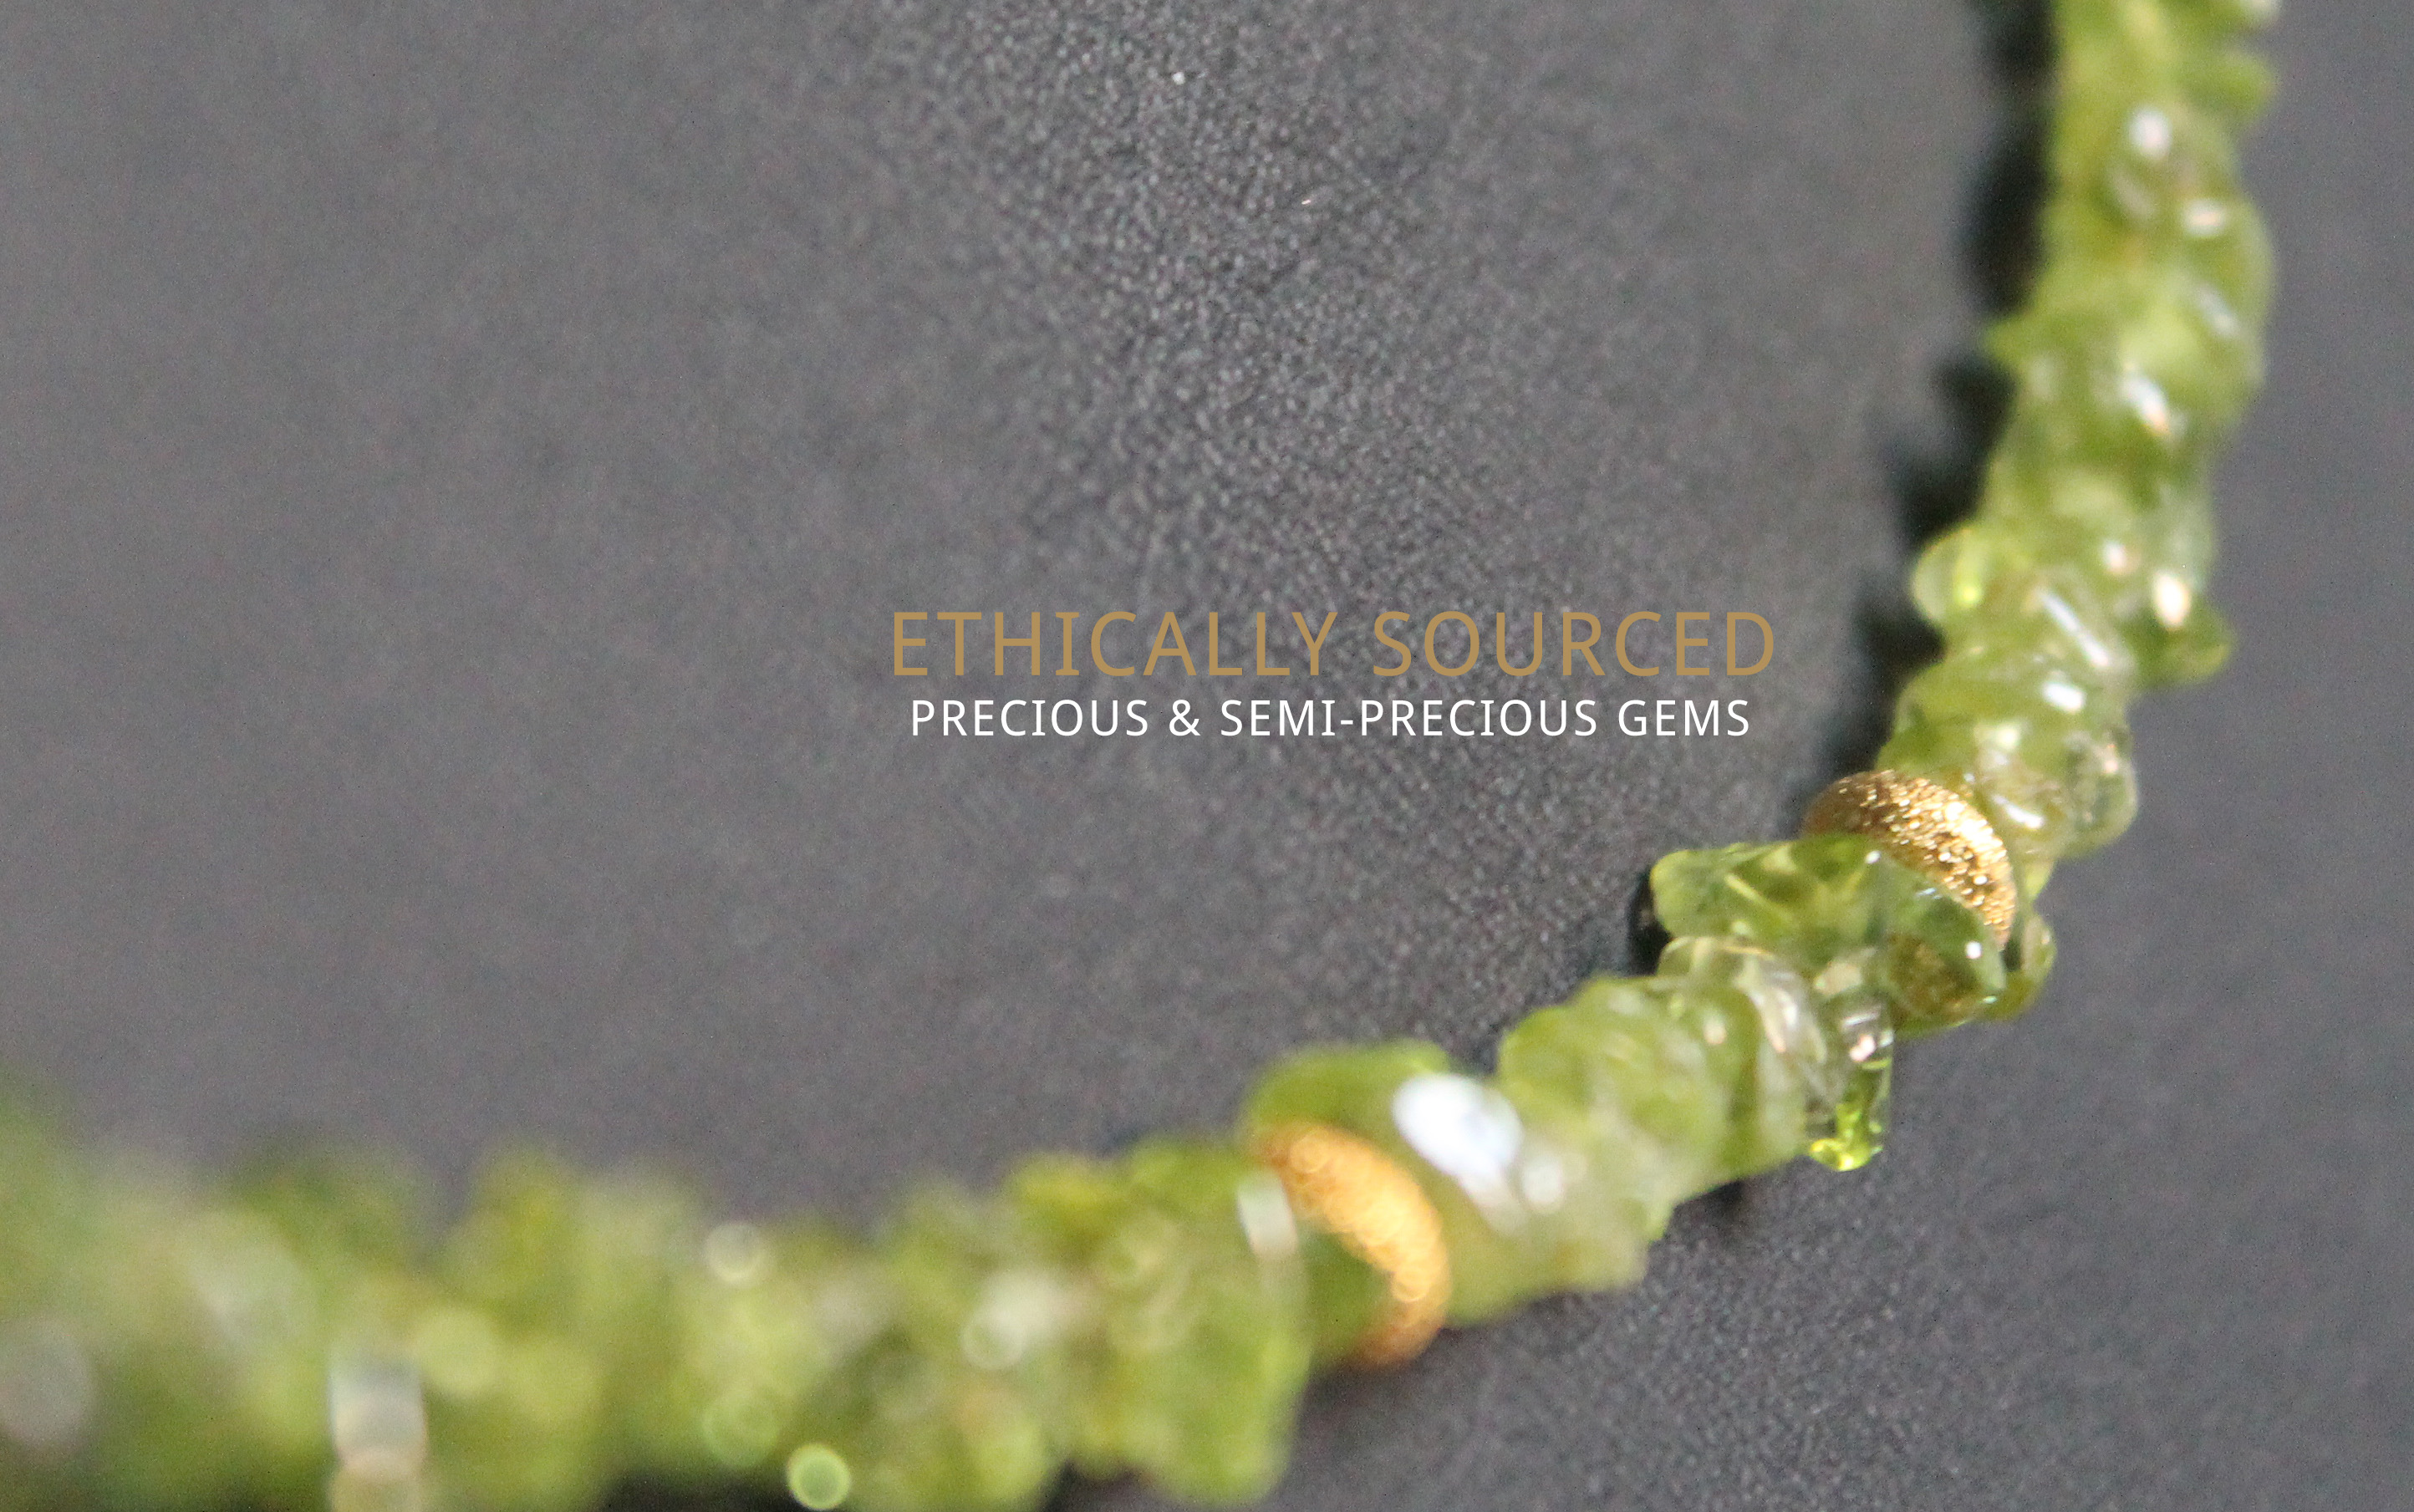 Ethically sourced precious and semi precious gems from Shaheen Jewellery